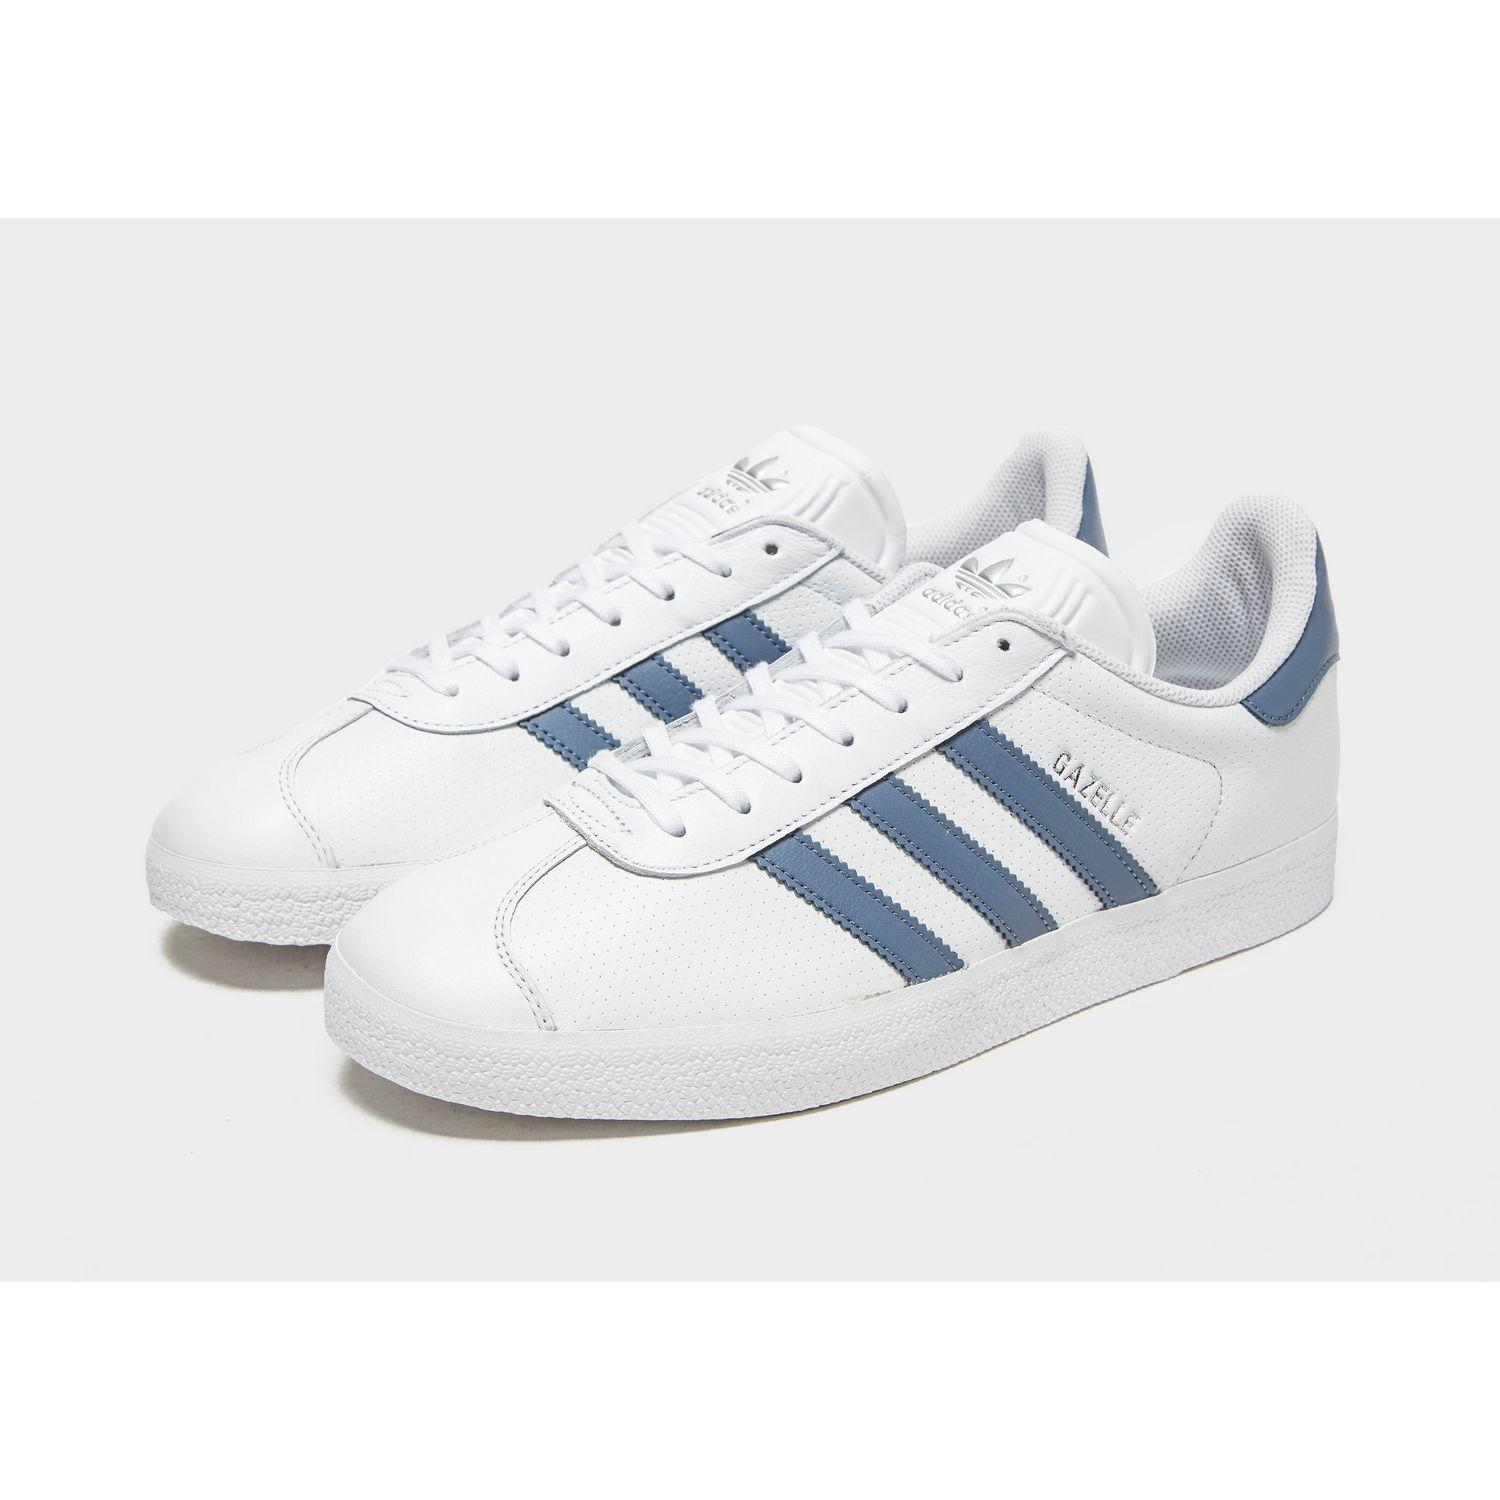 7c2d9c5ad Adidas Originals - Blue Gazelle for Men - Lyst. View fullscreen